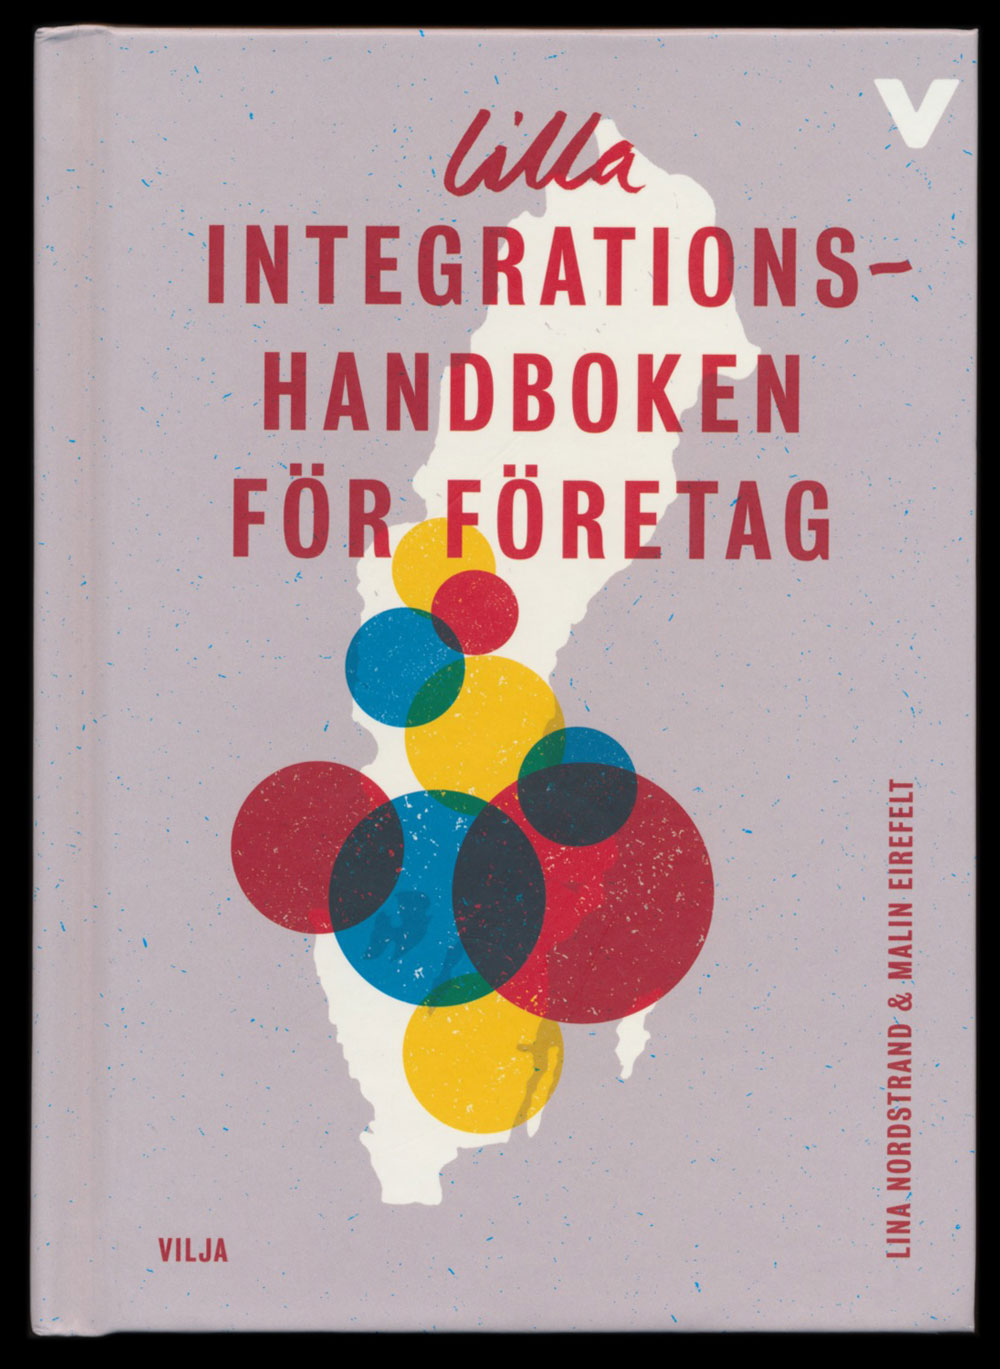 integrationshandbok